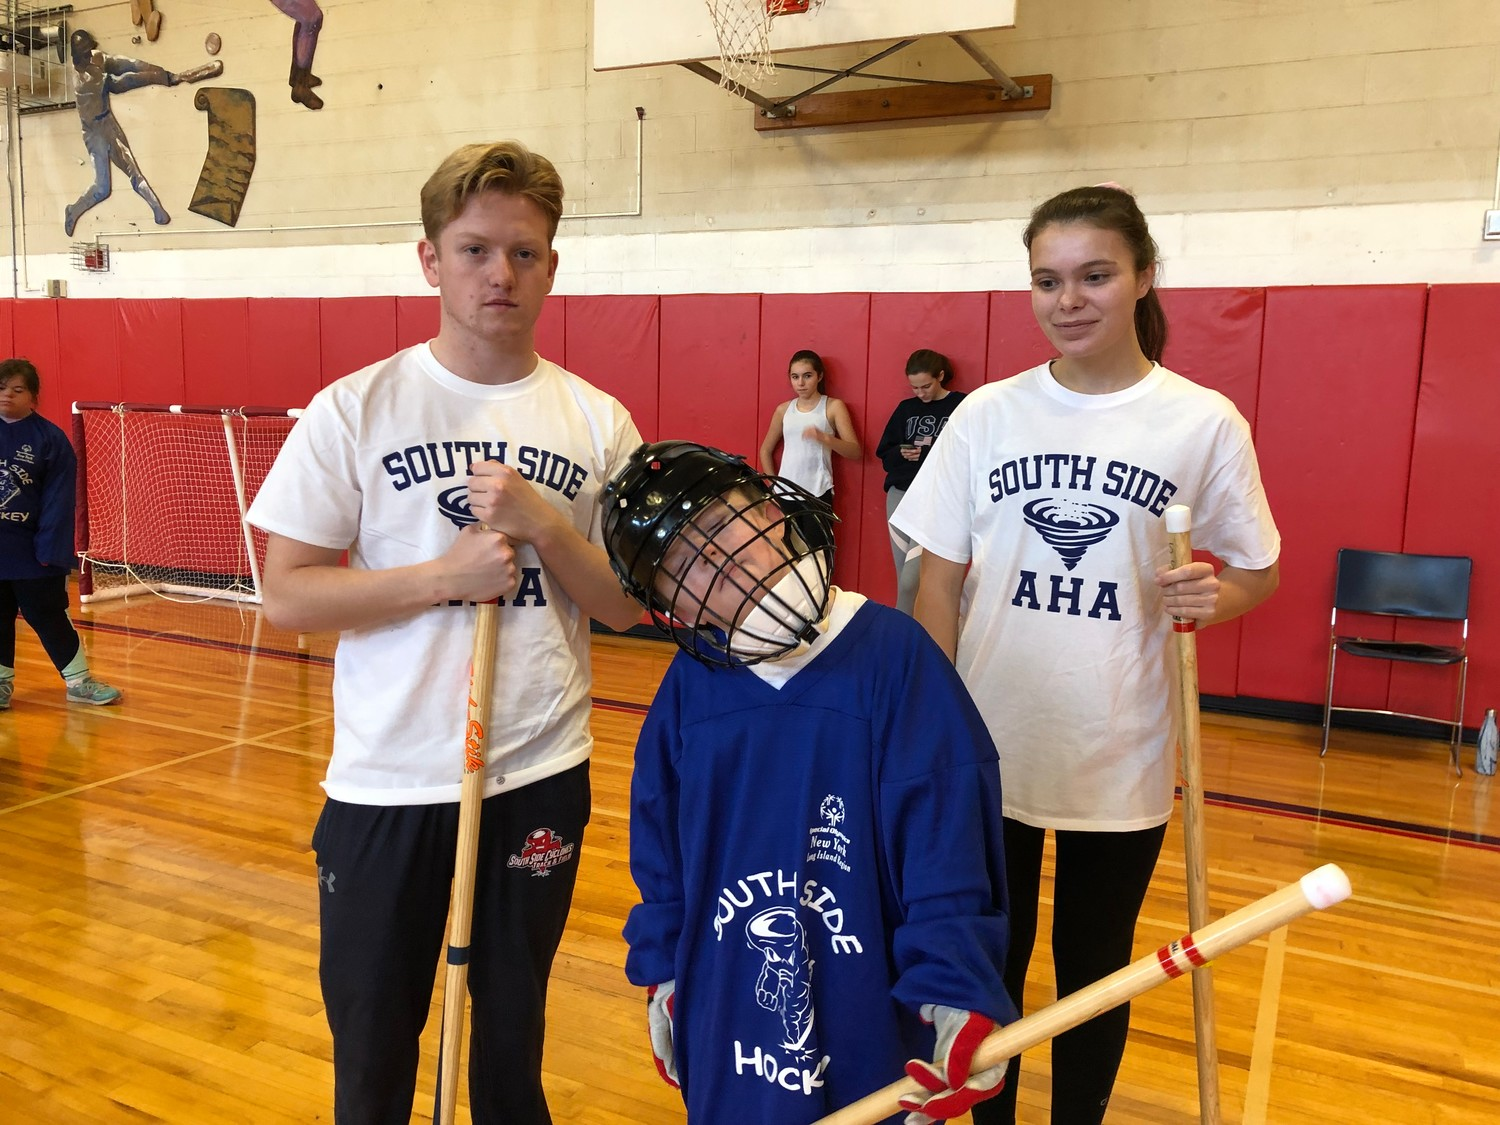 Brian Heaney, center, joined Athletes Helping Athletes volunteers Jack McGowan and Caitlin Cuszak.